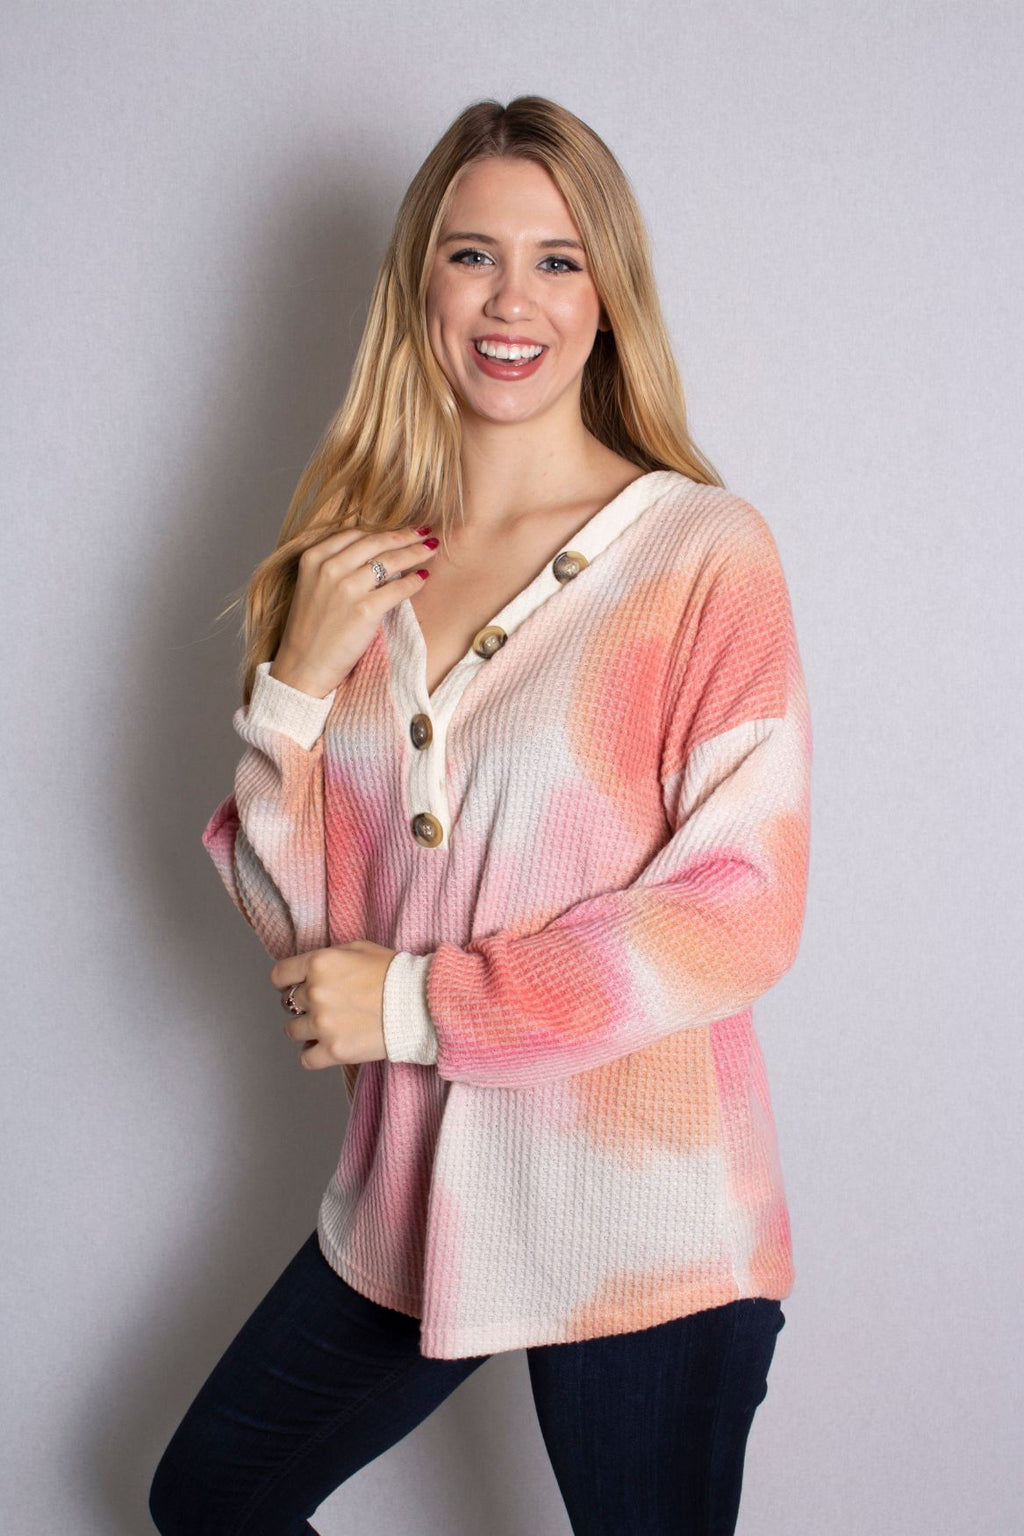 Women's Long Sleeve Tie Dye Waffle Knit Top With Button Detail